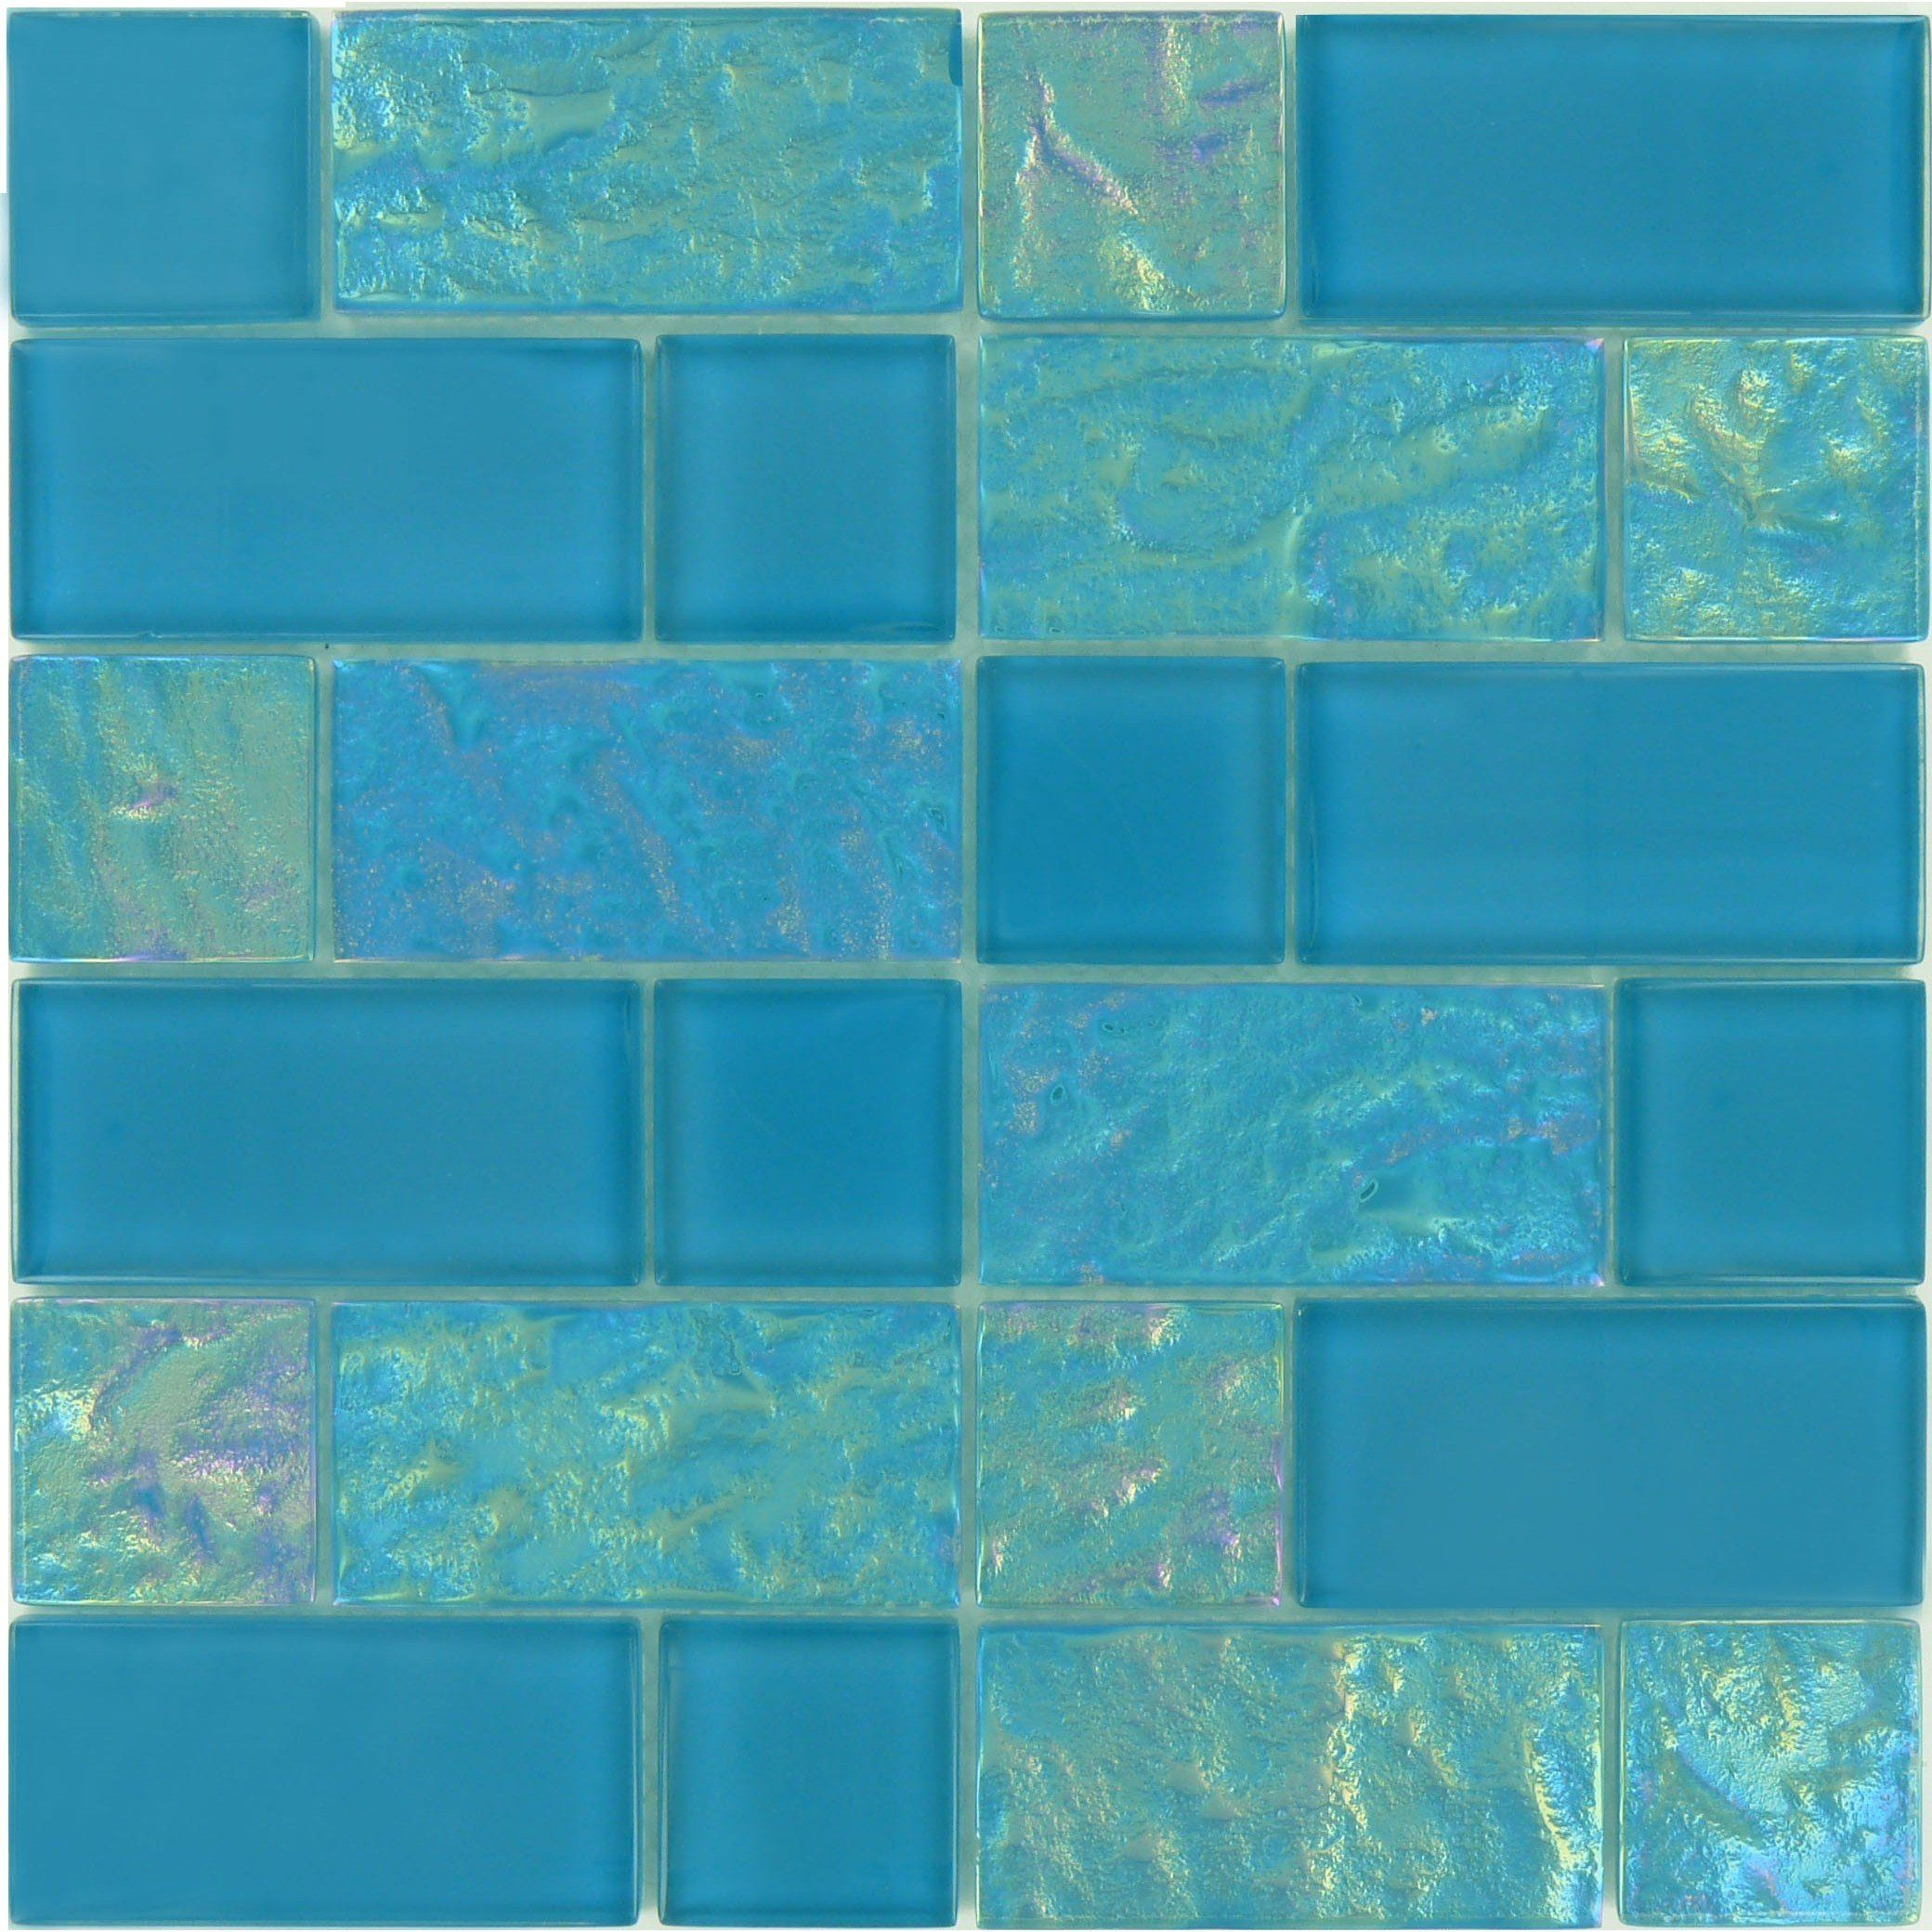 Sheet Size 11 5 X2f 8 Quot X 11 5 X2f 8 Quot Tile Size 1 7 X2f 8 X 1 7 X2f 8 Quot Amp 3 7 X2f 8 Quo Iridescent Glass Tiles Glass Tile Pool Tile